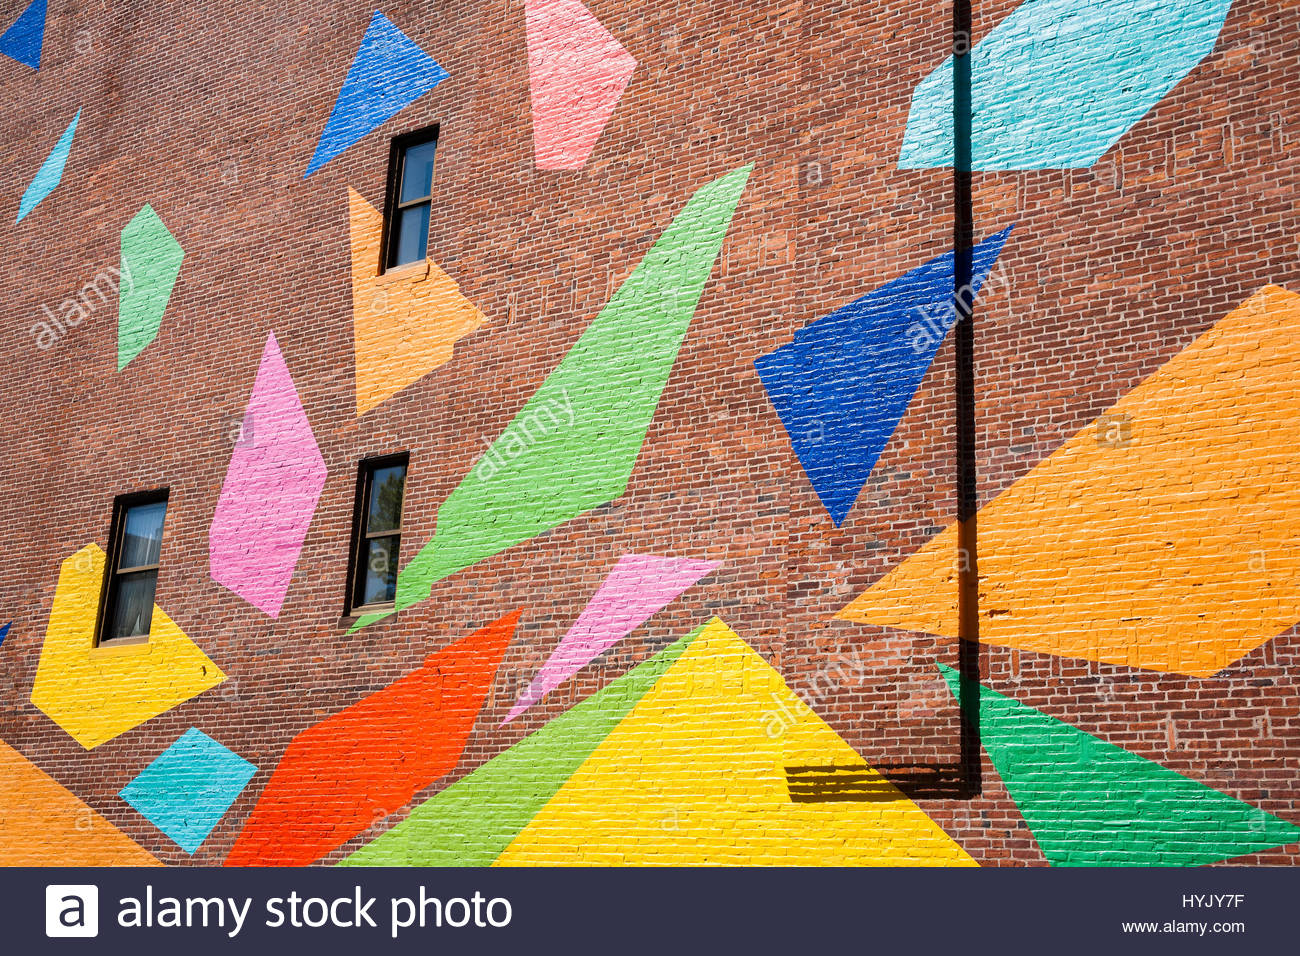 Color shapes painted onto exterior office building wall. - Stock Image